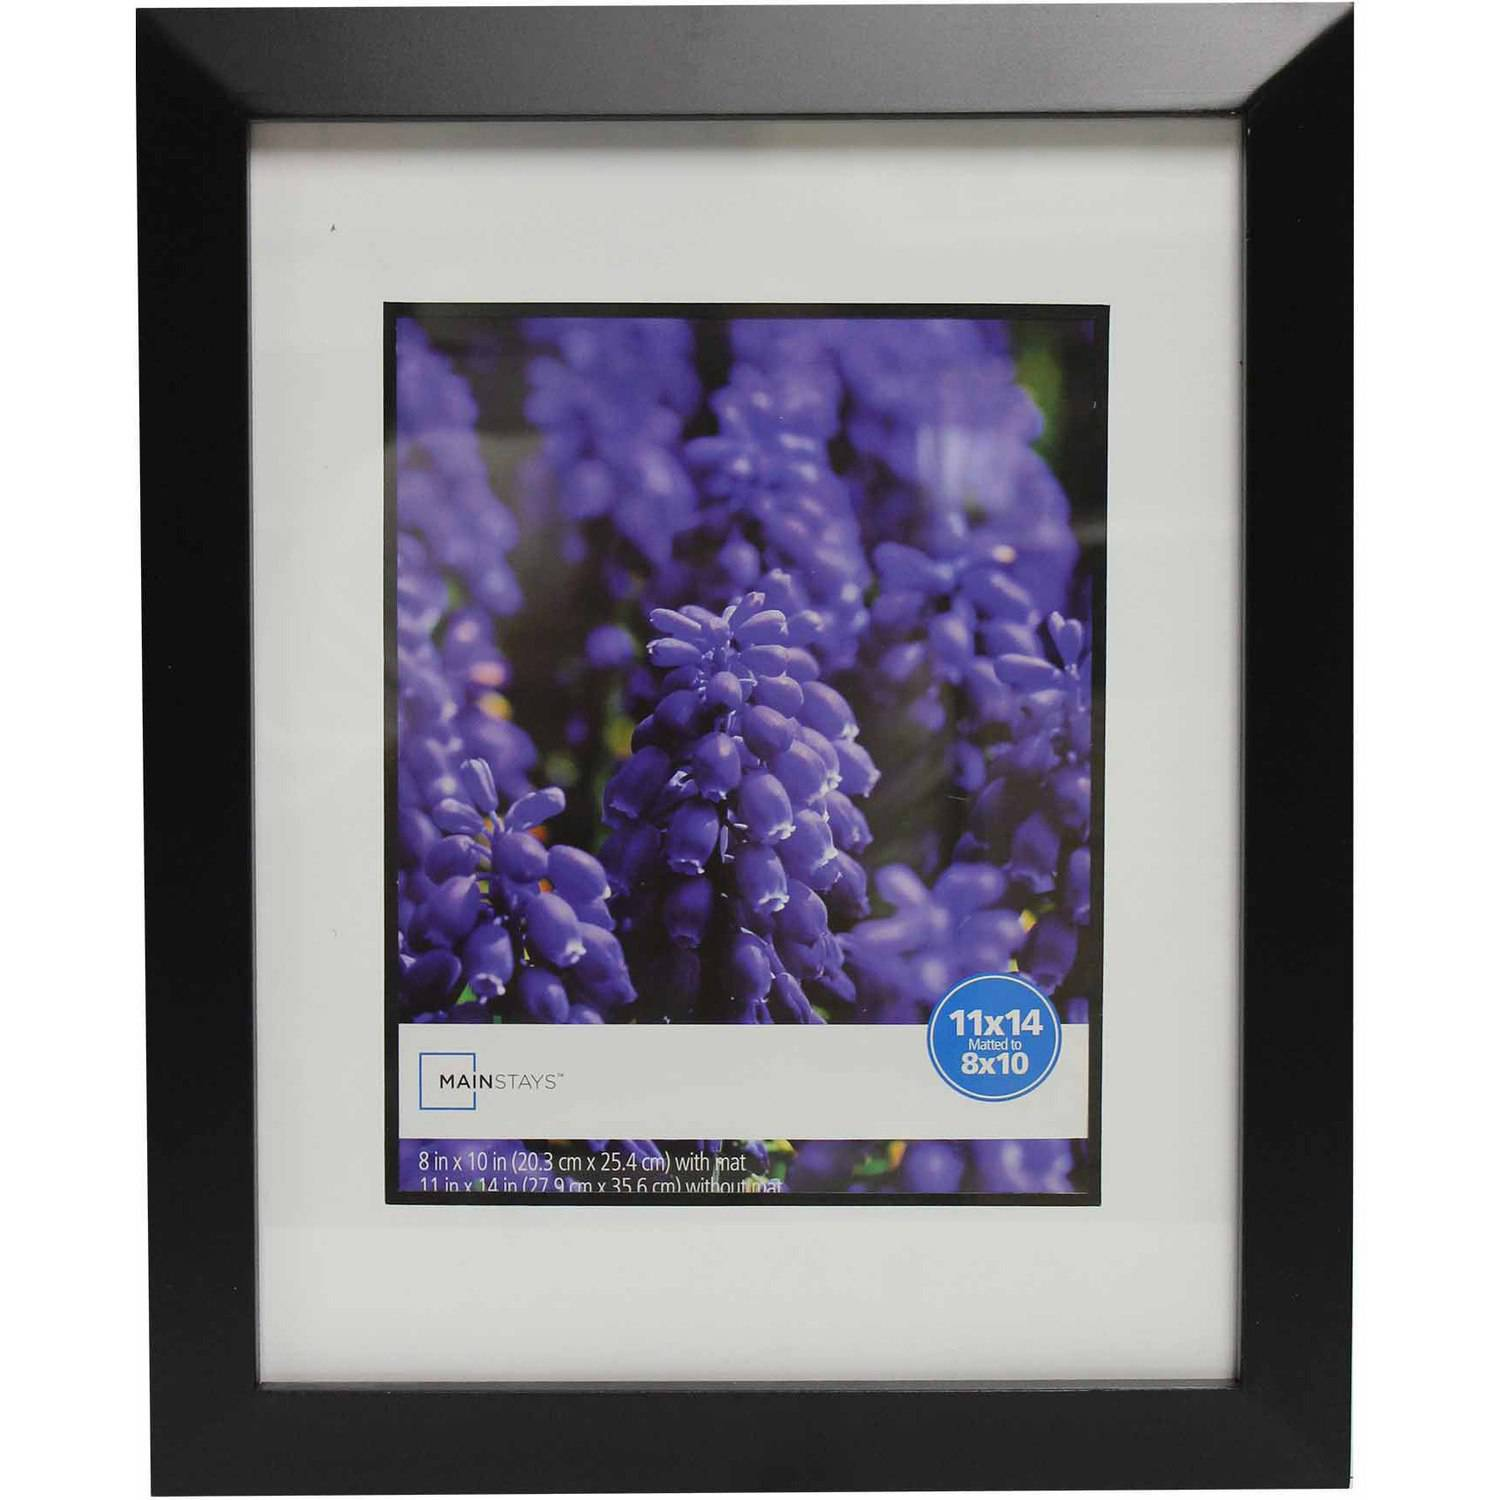 Mainstays Wide Picture Frame, 11x14 matted to 8x10